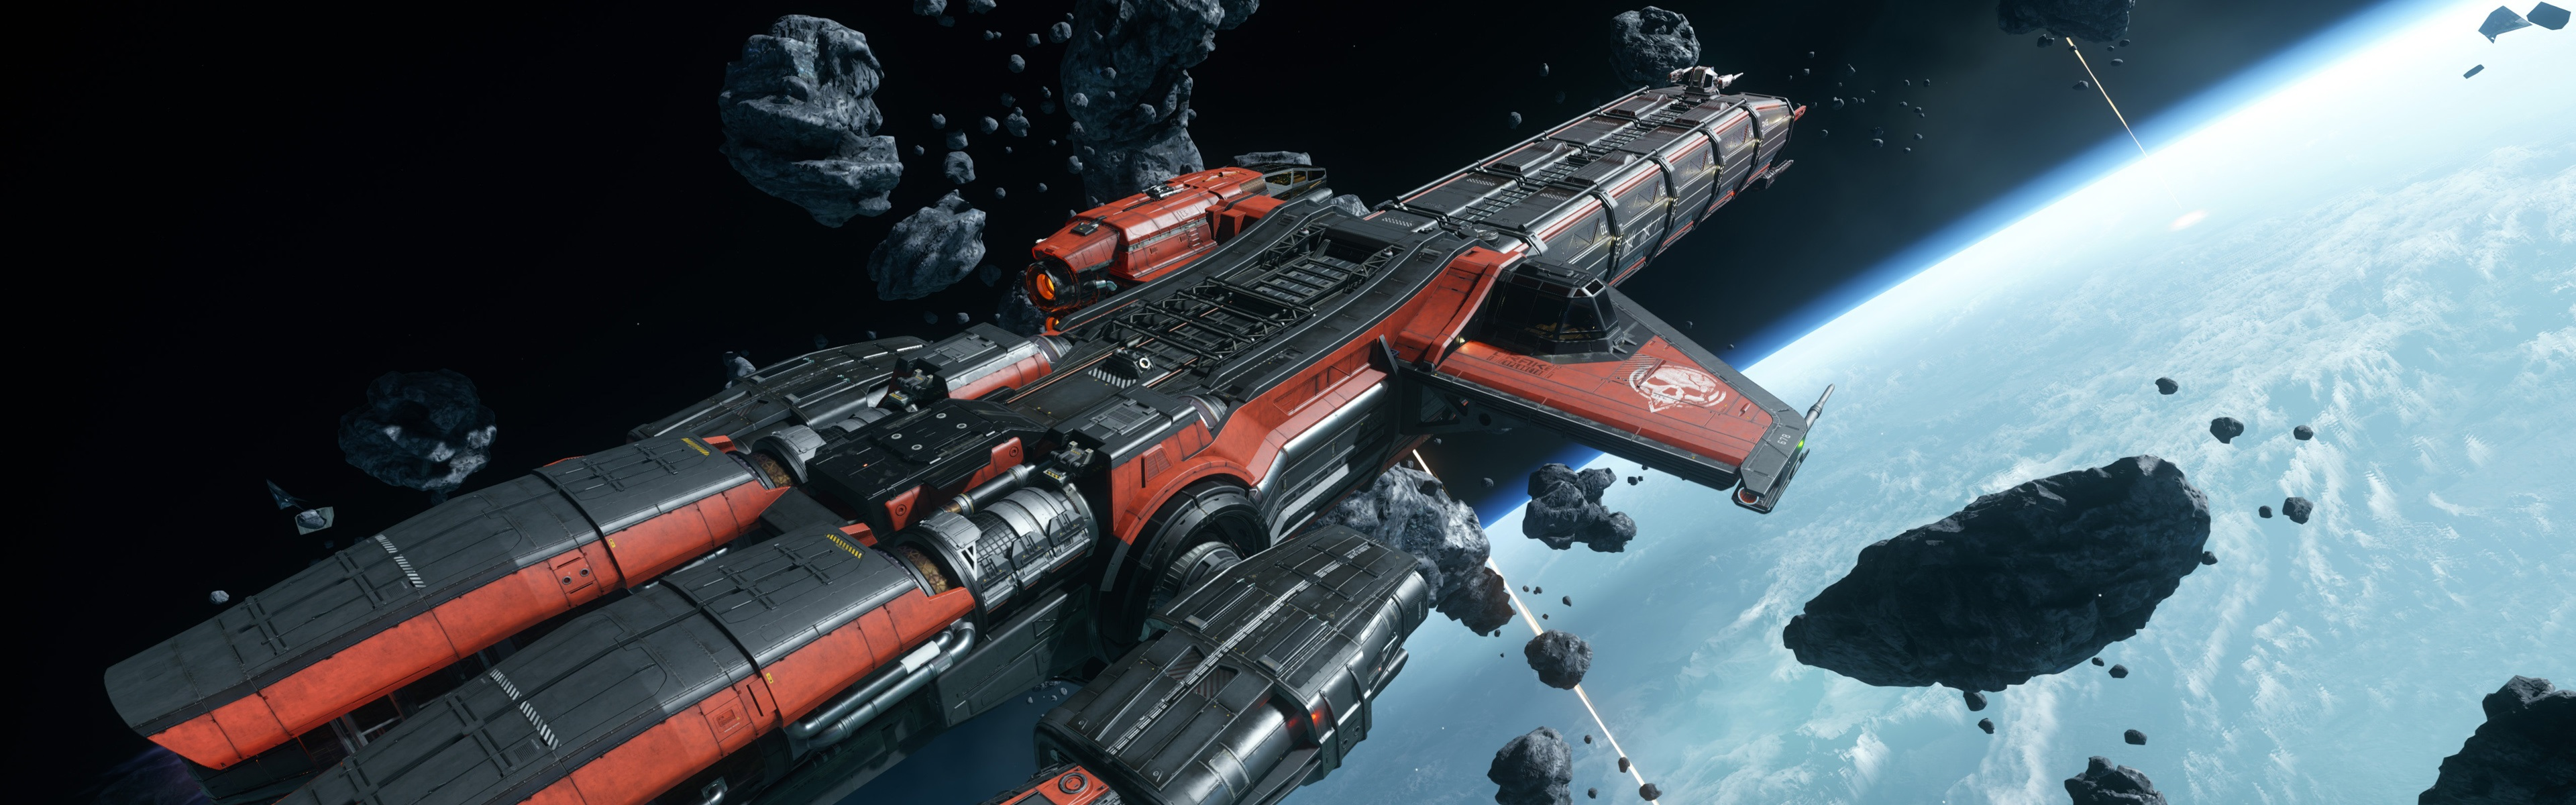 Download wallpaper 3840x1200 star citizen starship space - Space wallpaper 3840x1200 ...